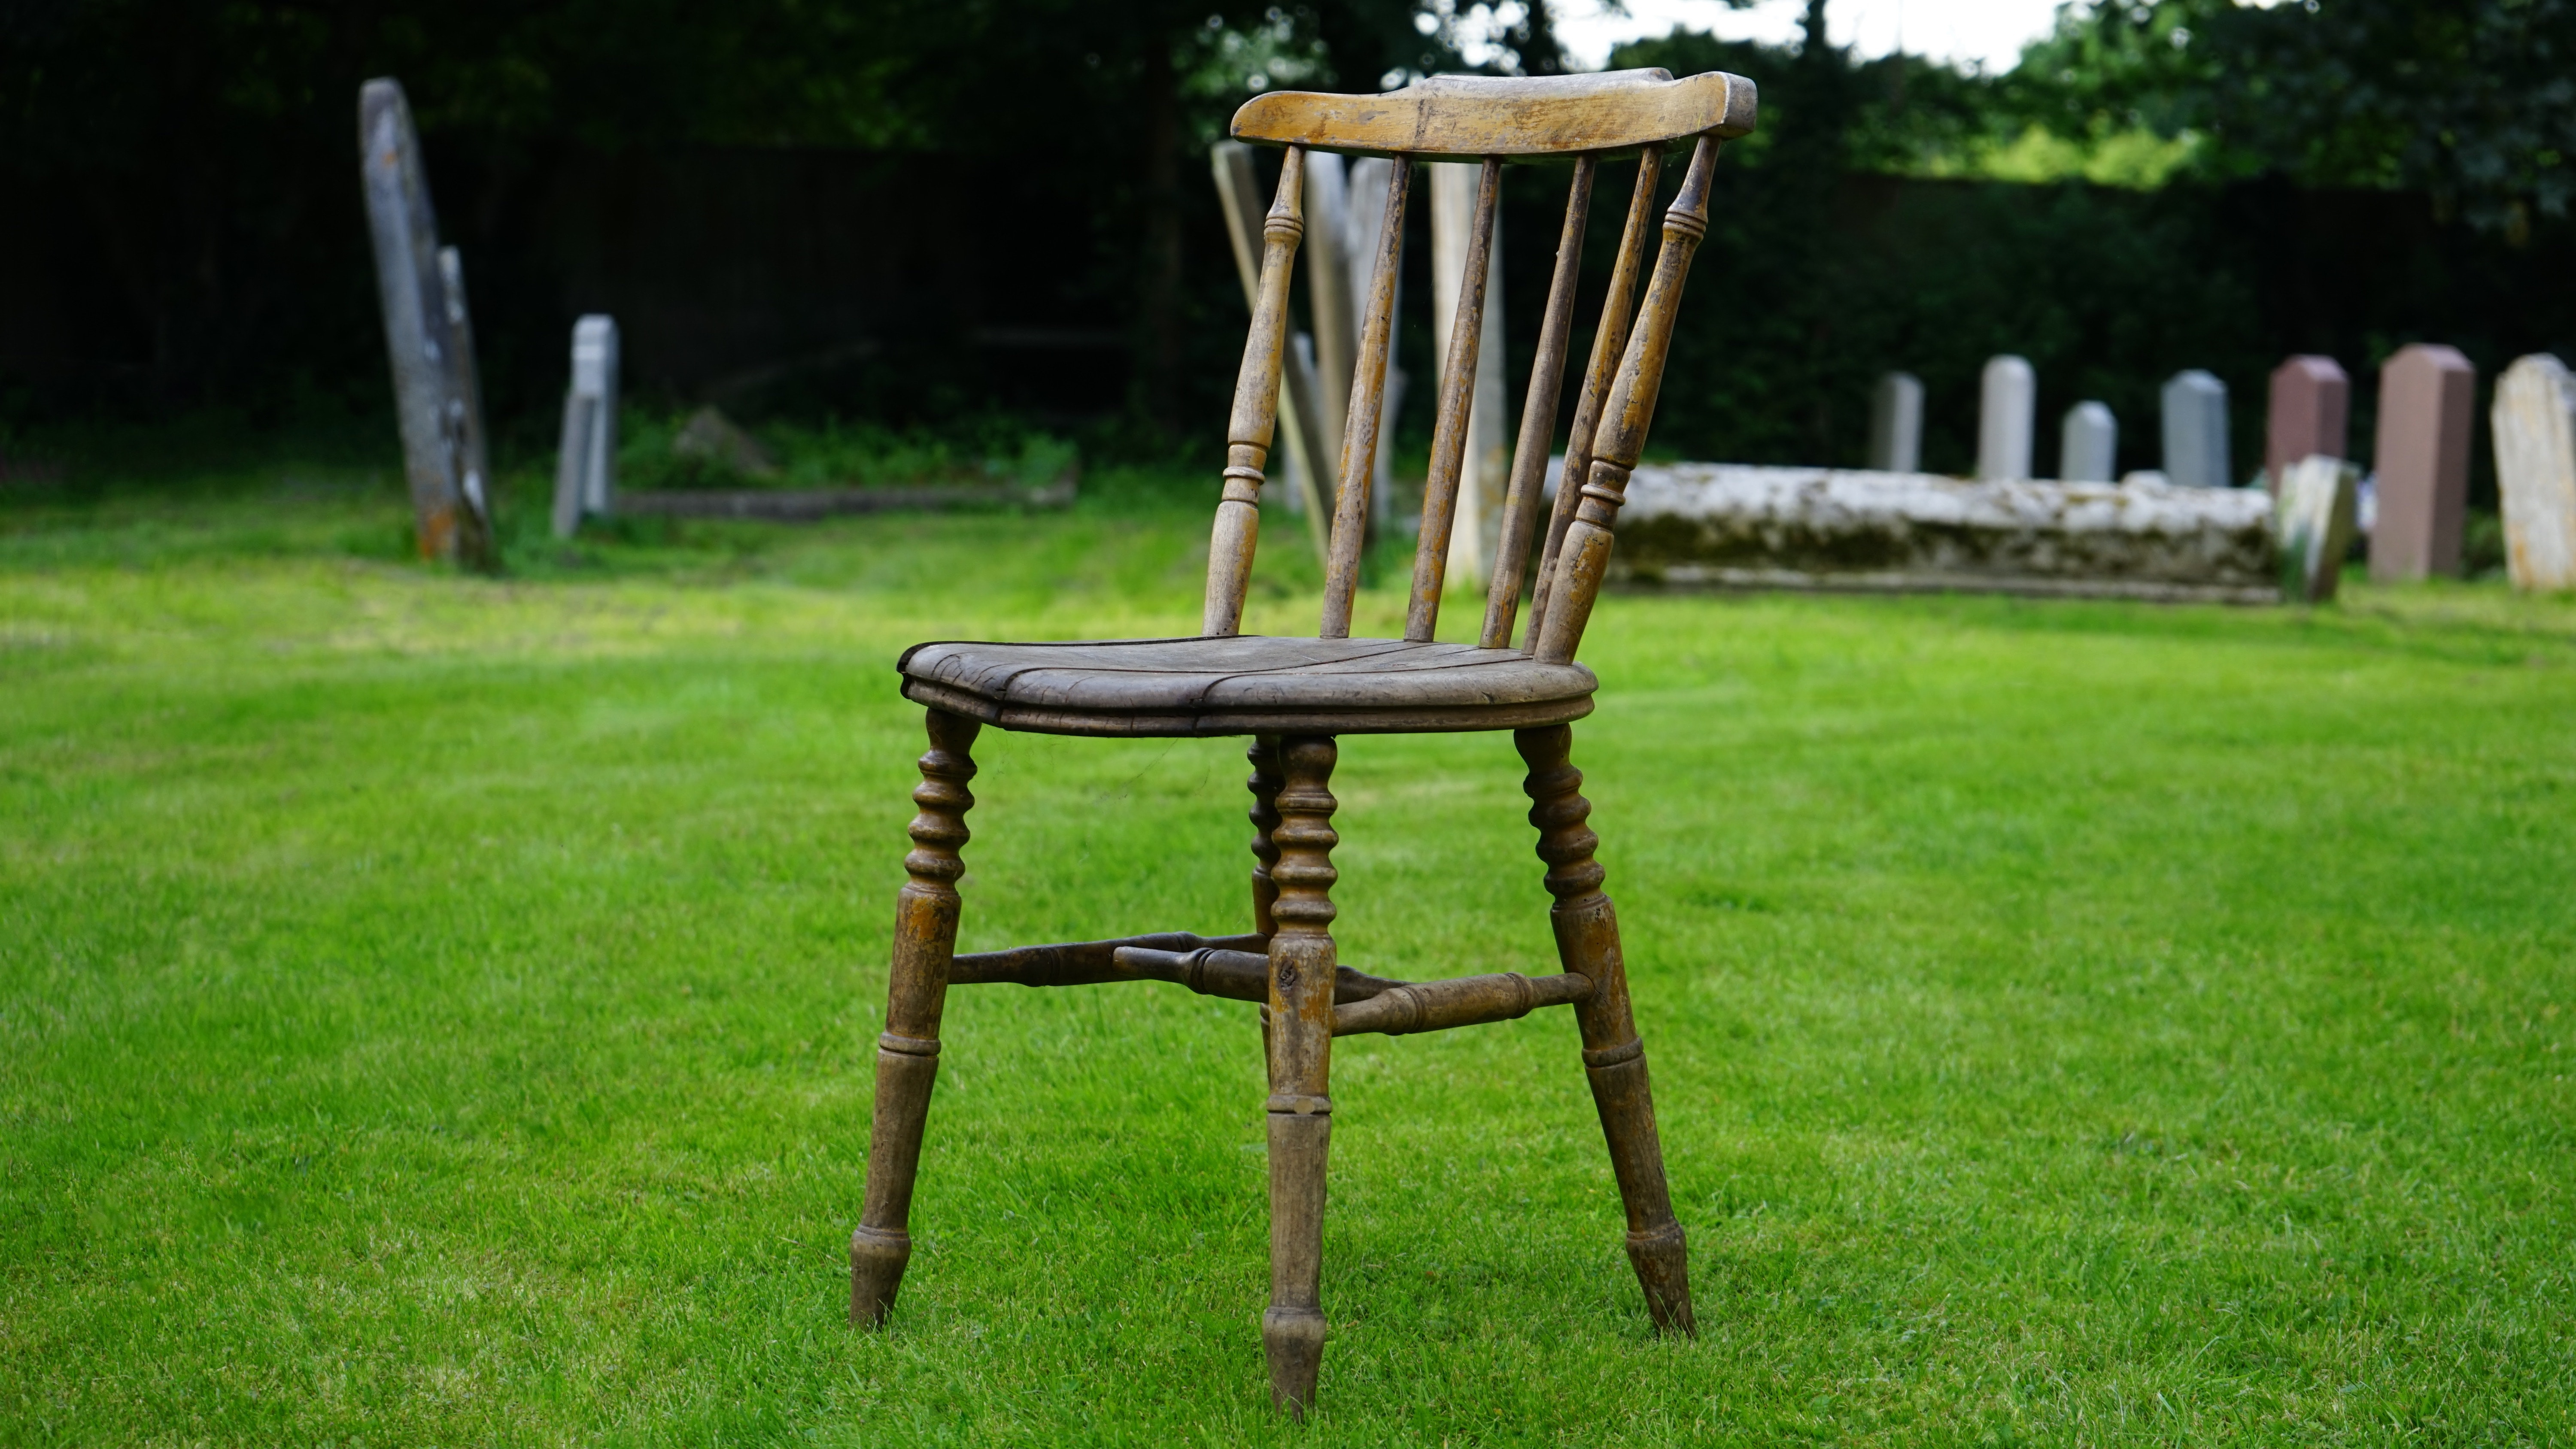 600 Artistic Chair Images 183 Pexels 183 Free Stock Photos